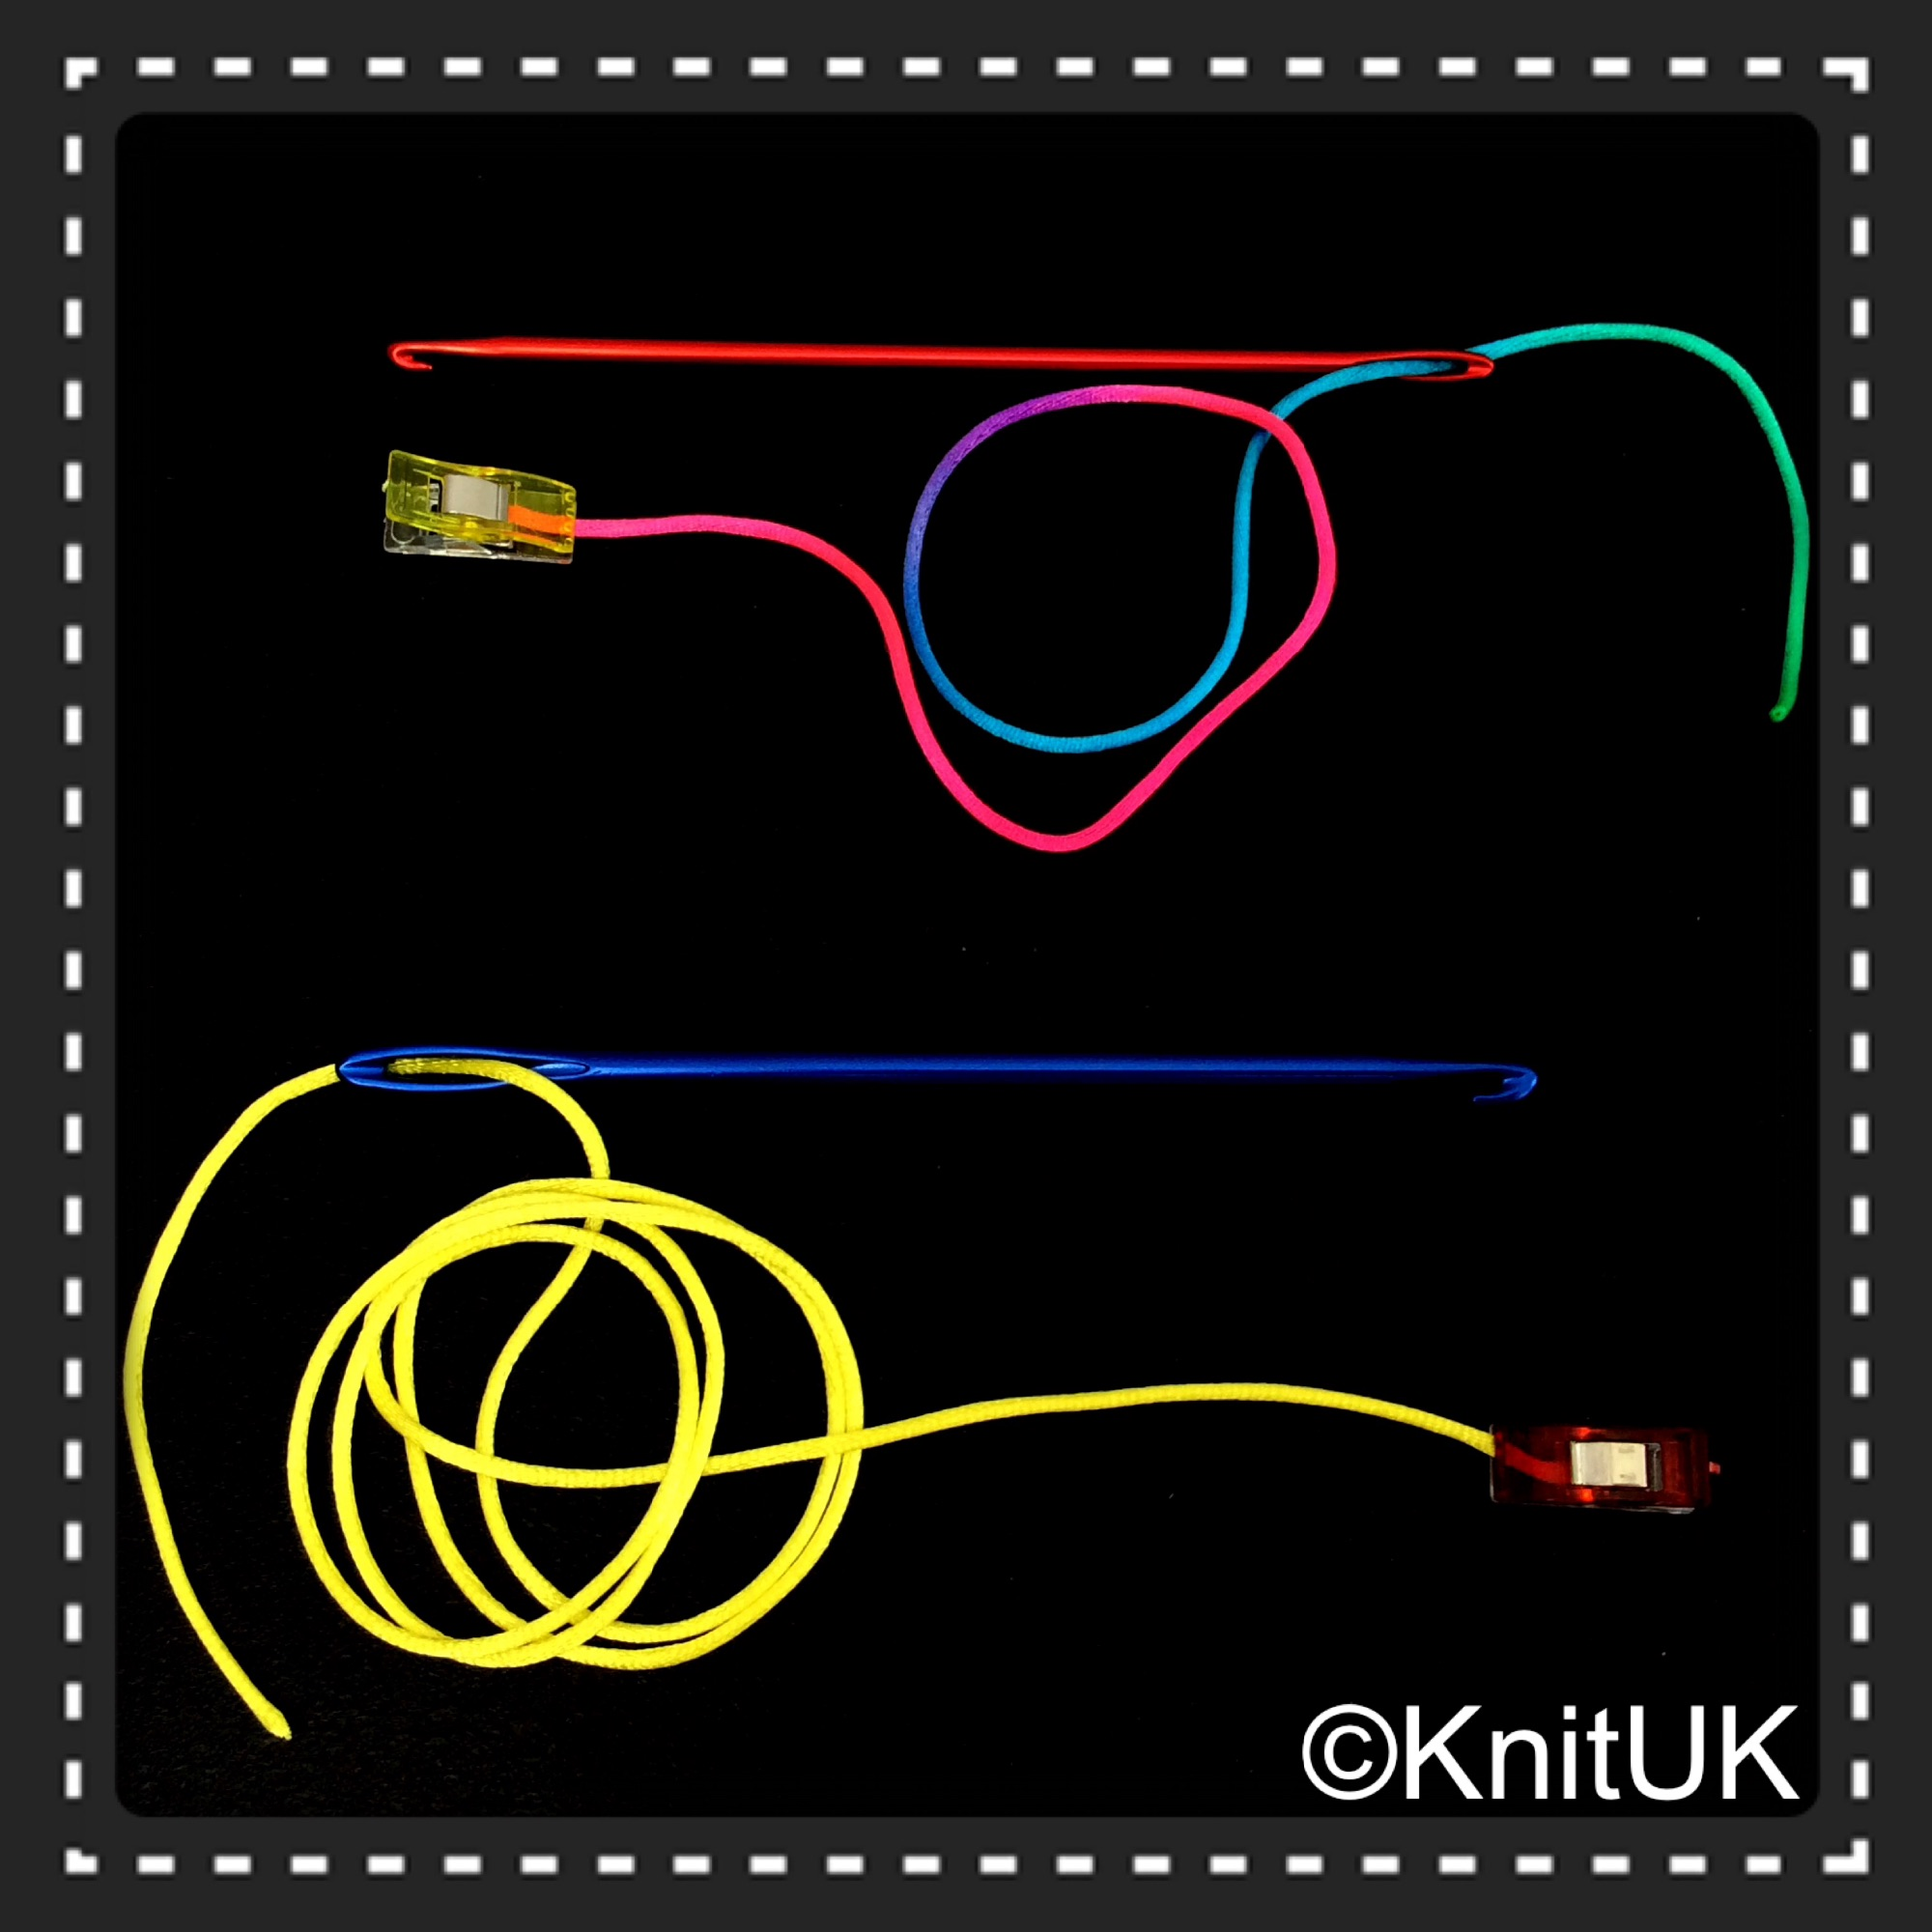 KnitUK Knook Set with cords and sewing clips